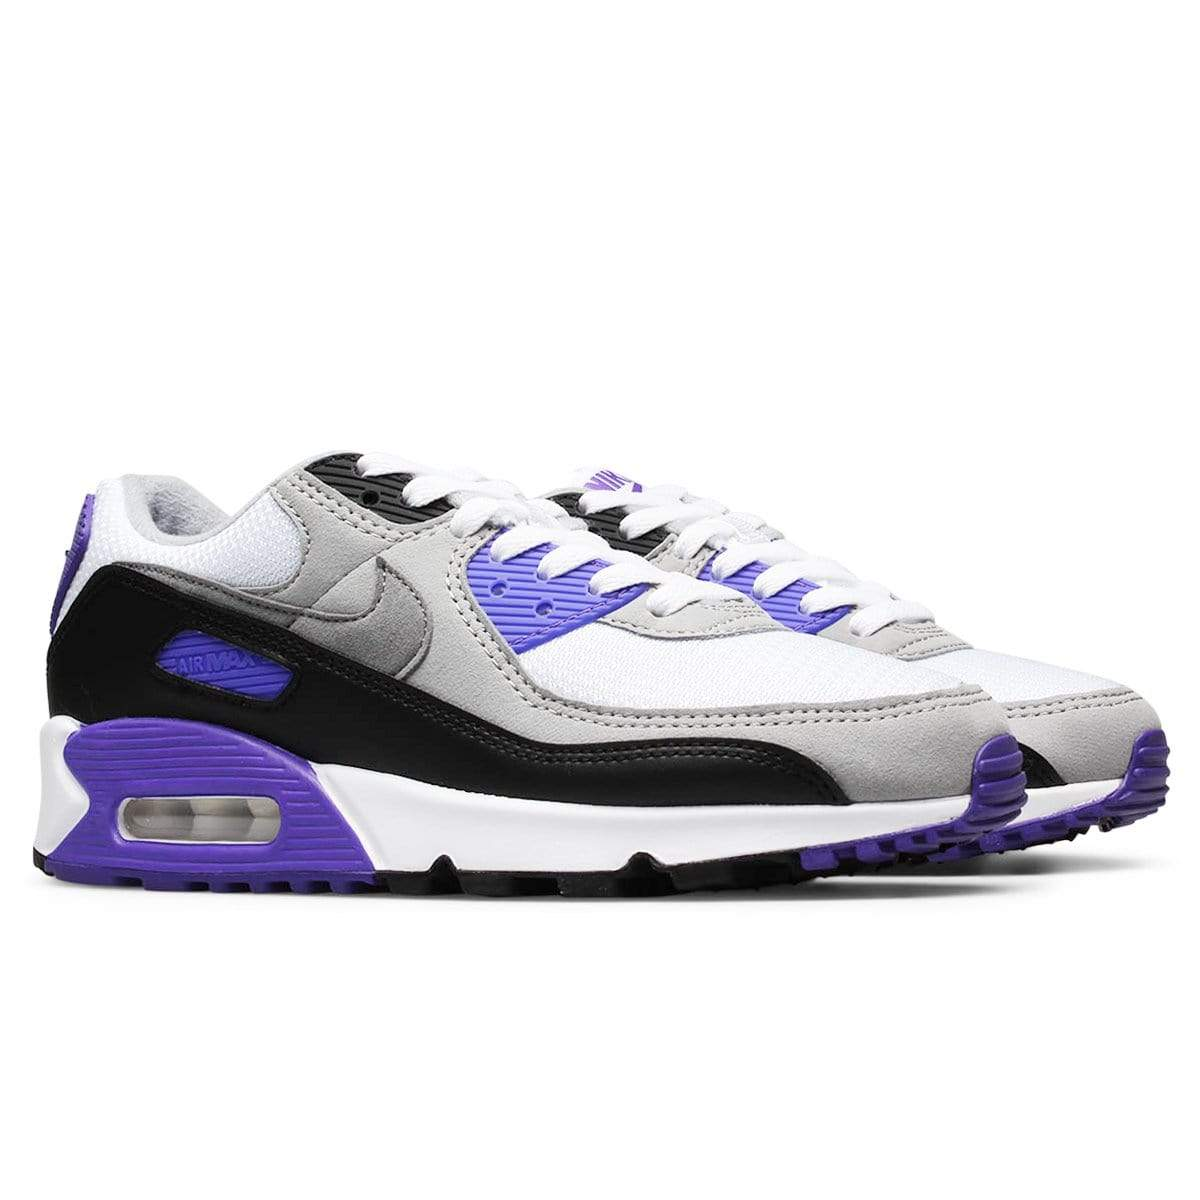 Nike Shoes WOMEN'S AIR MAX 90